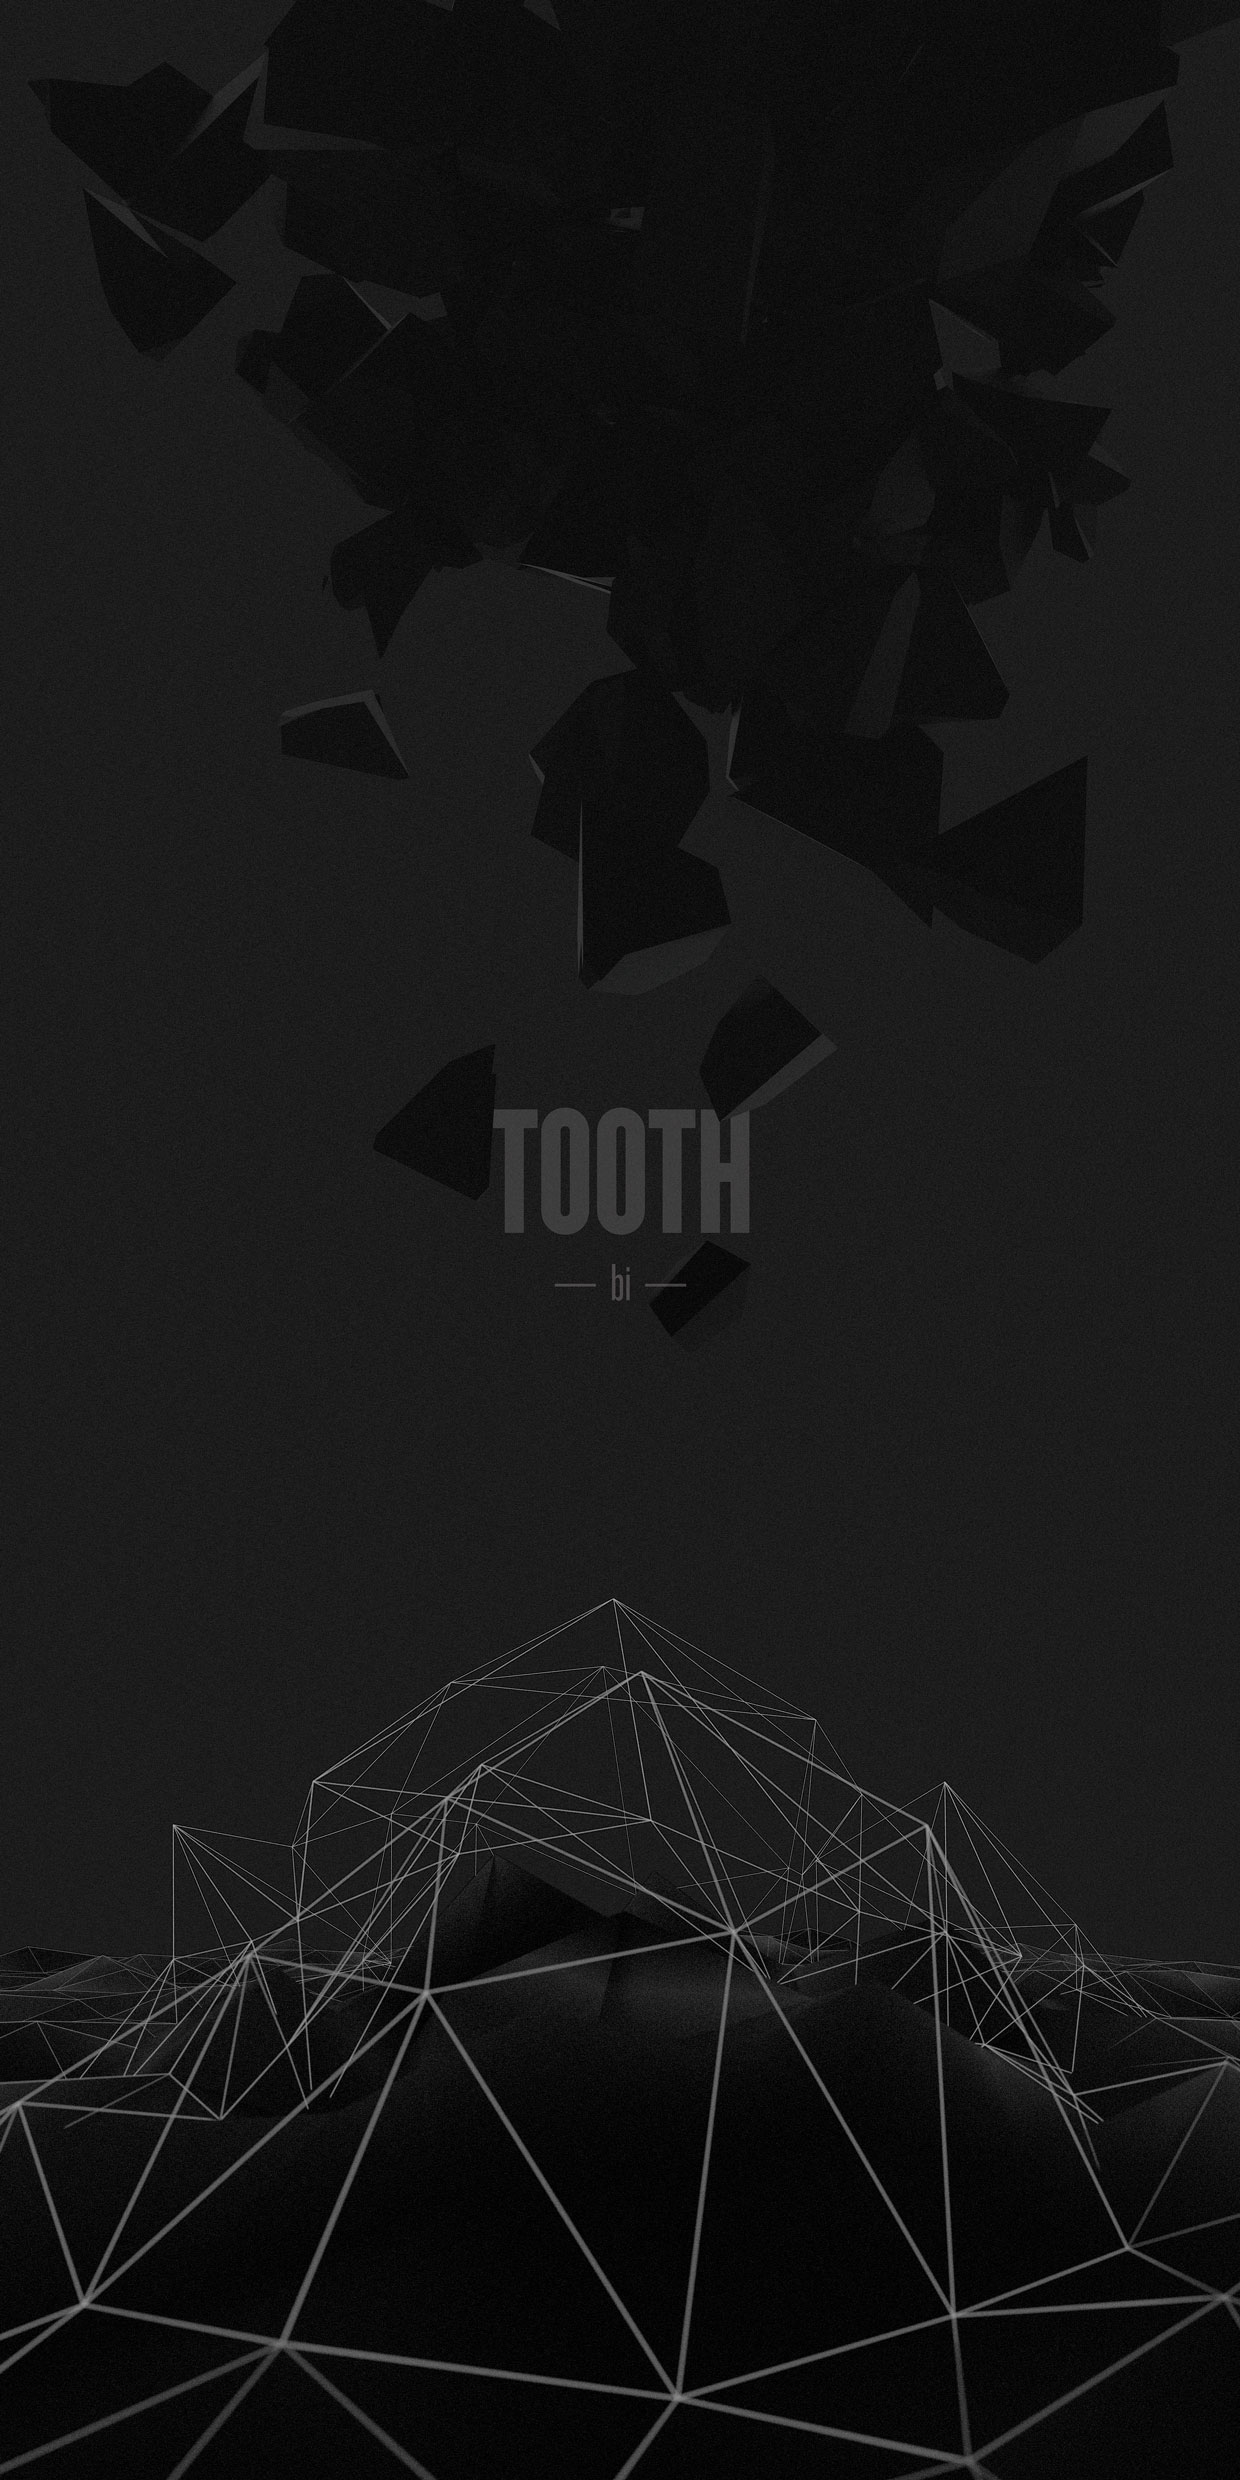 Hodo_Tooth_4